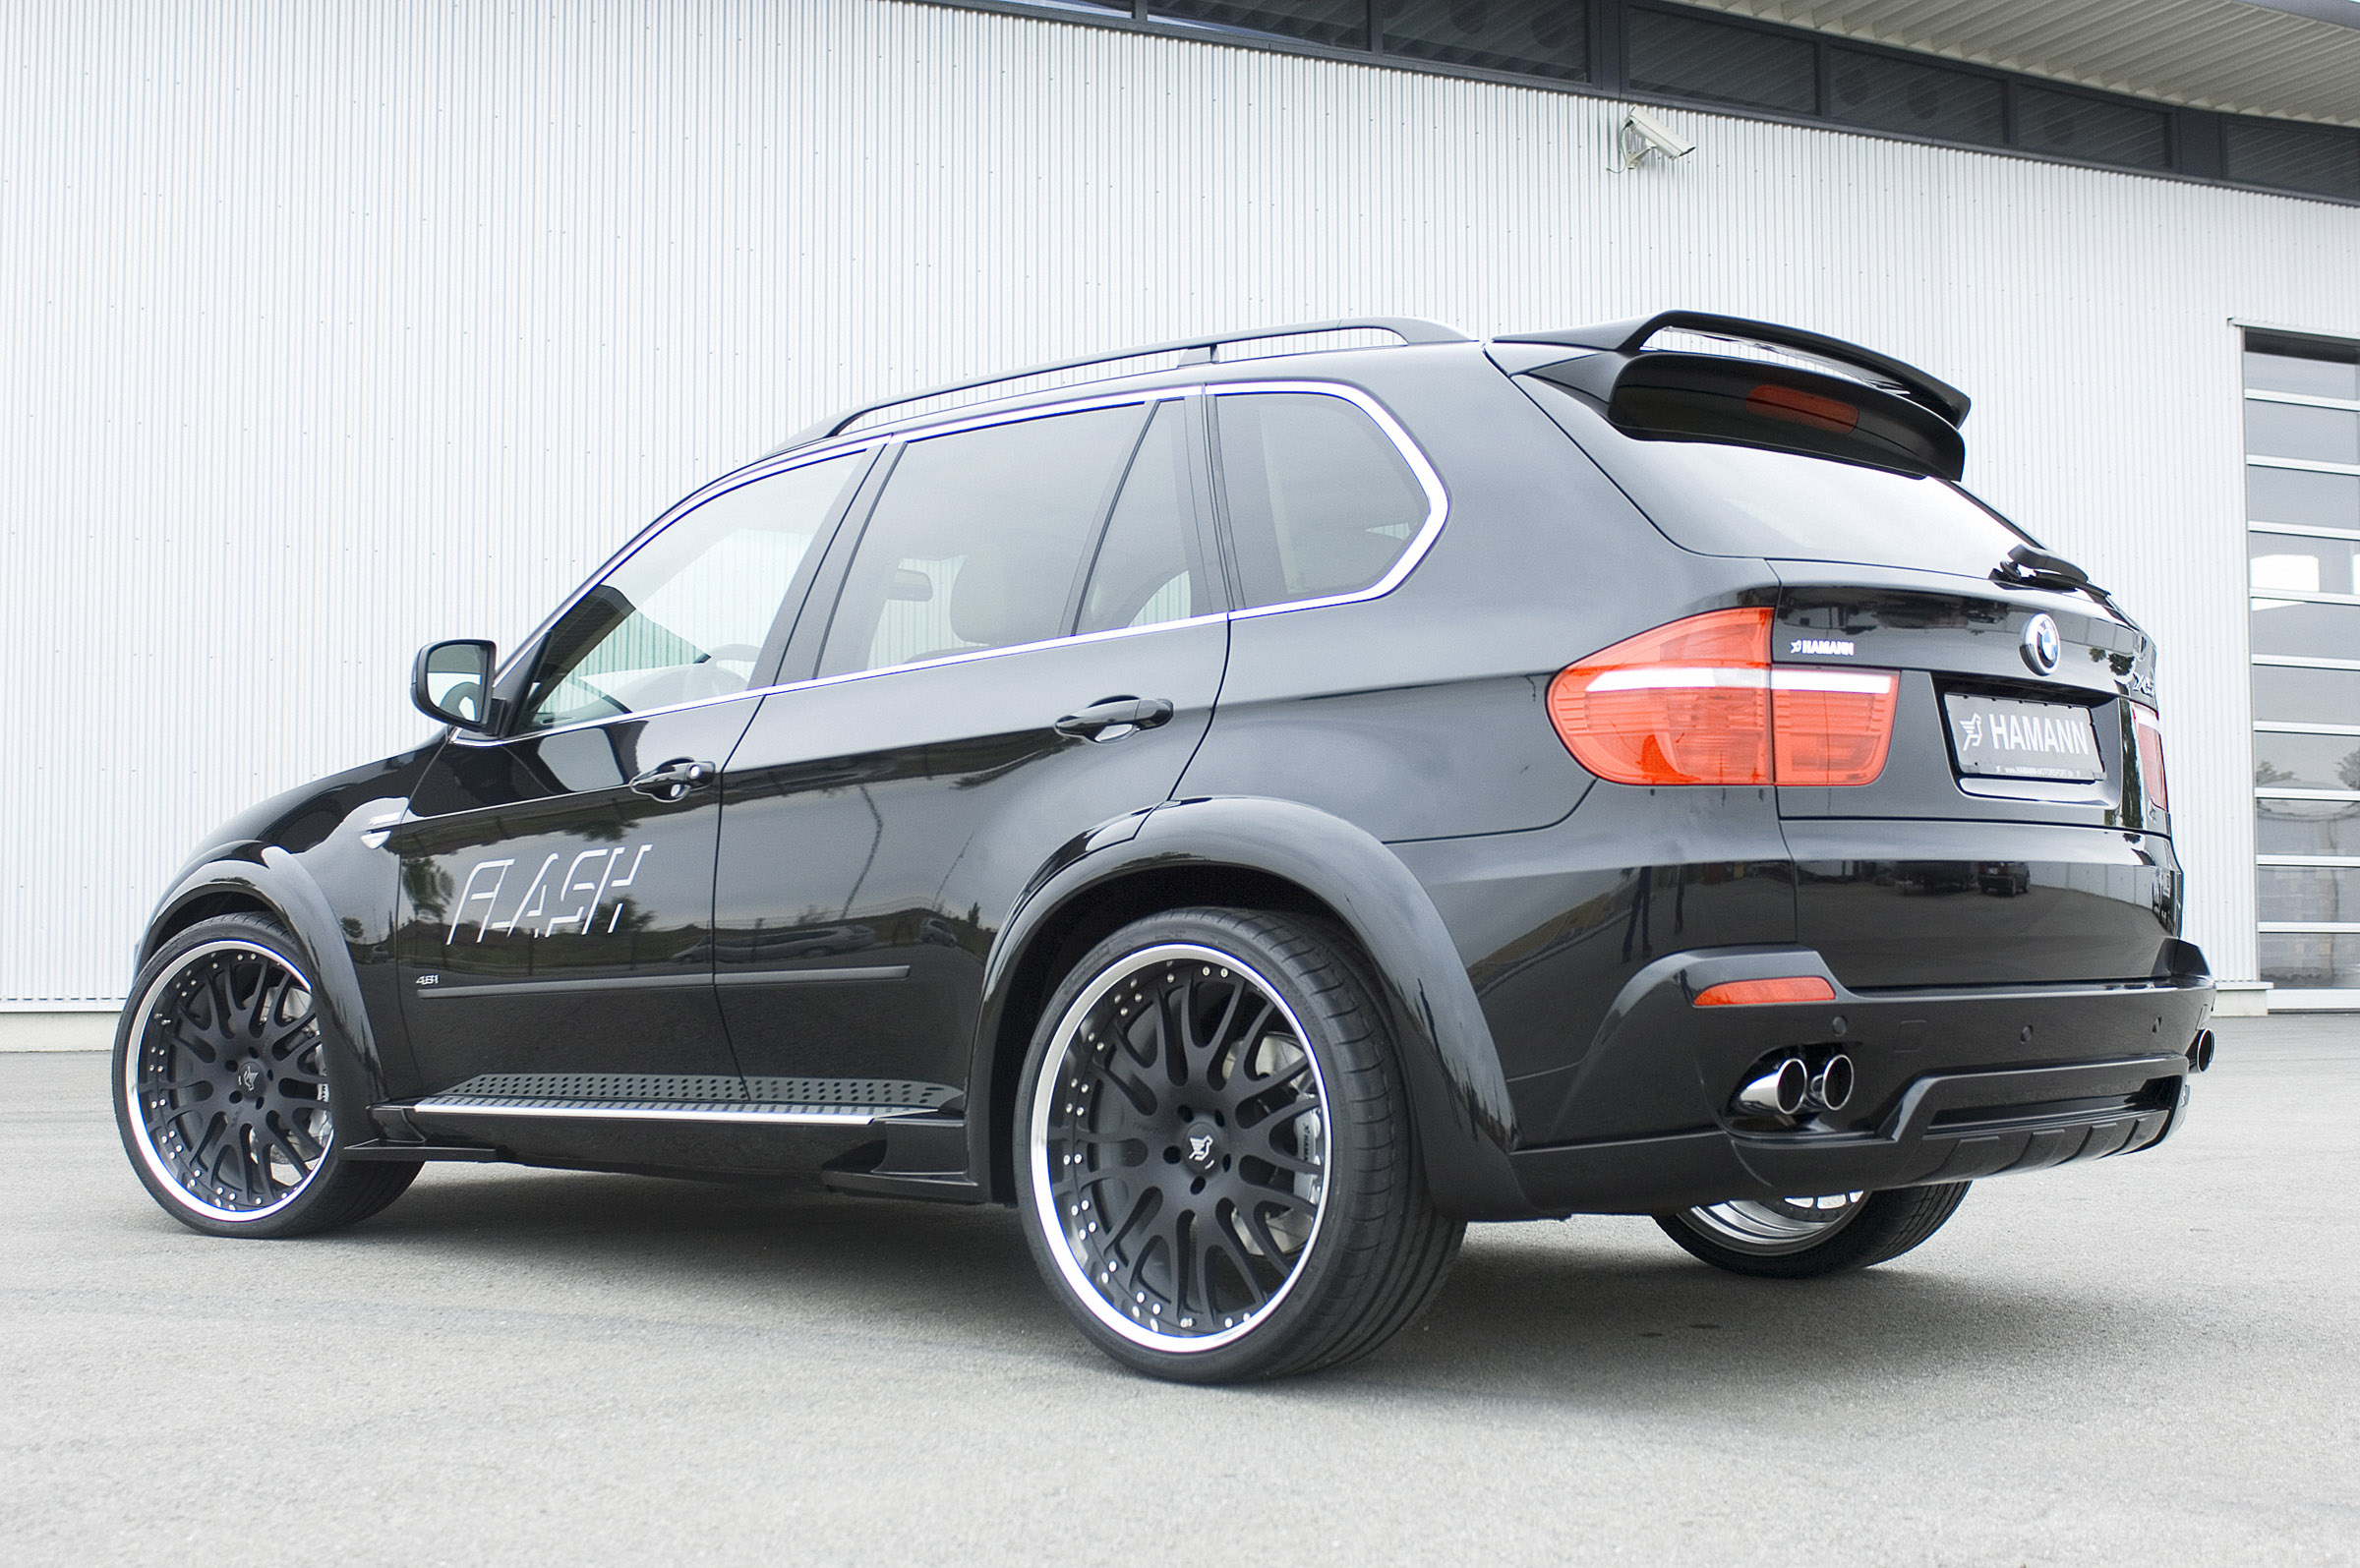 hamann flash bmw x5 picture 17174. Black Bedroom Furniture Sets. Home Design Ideas